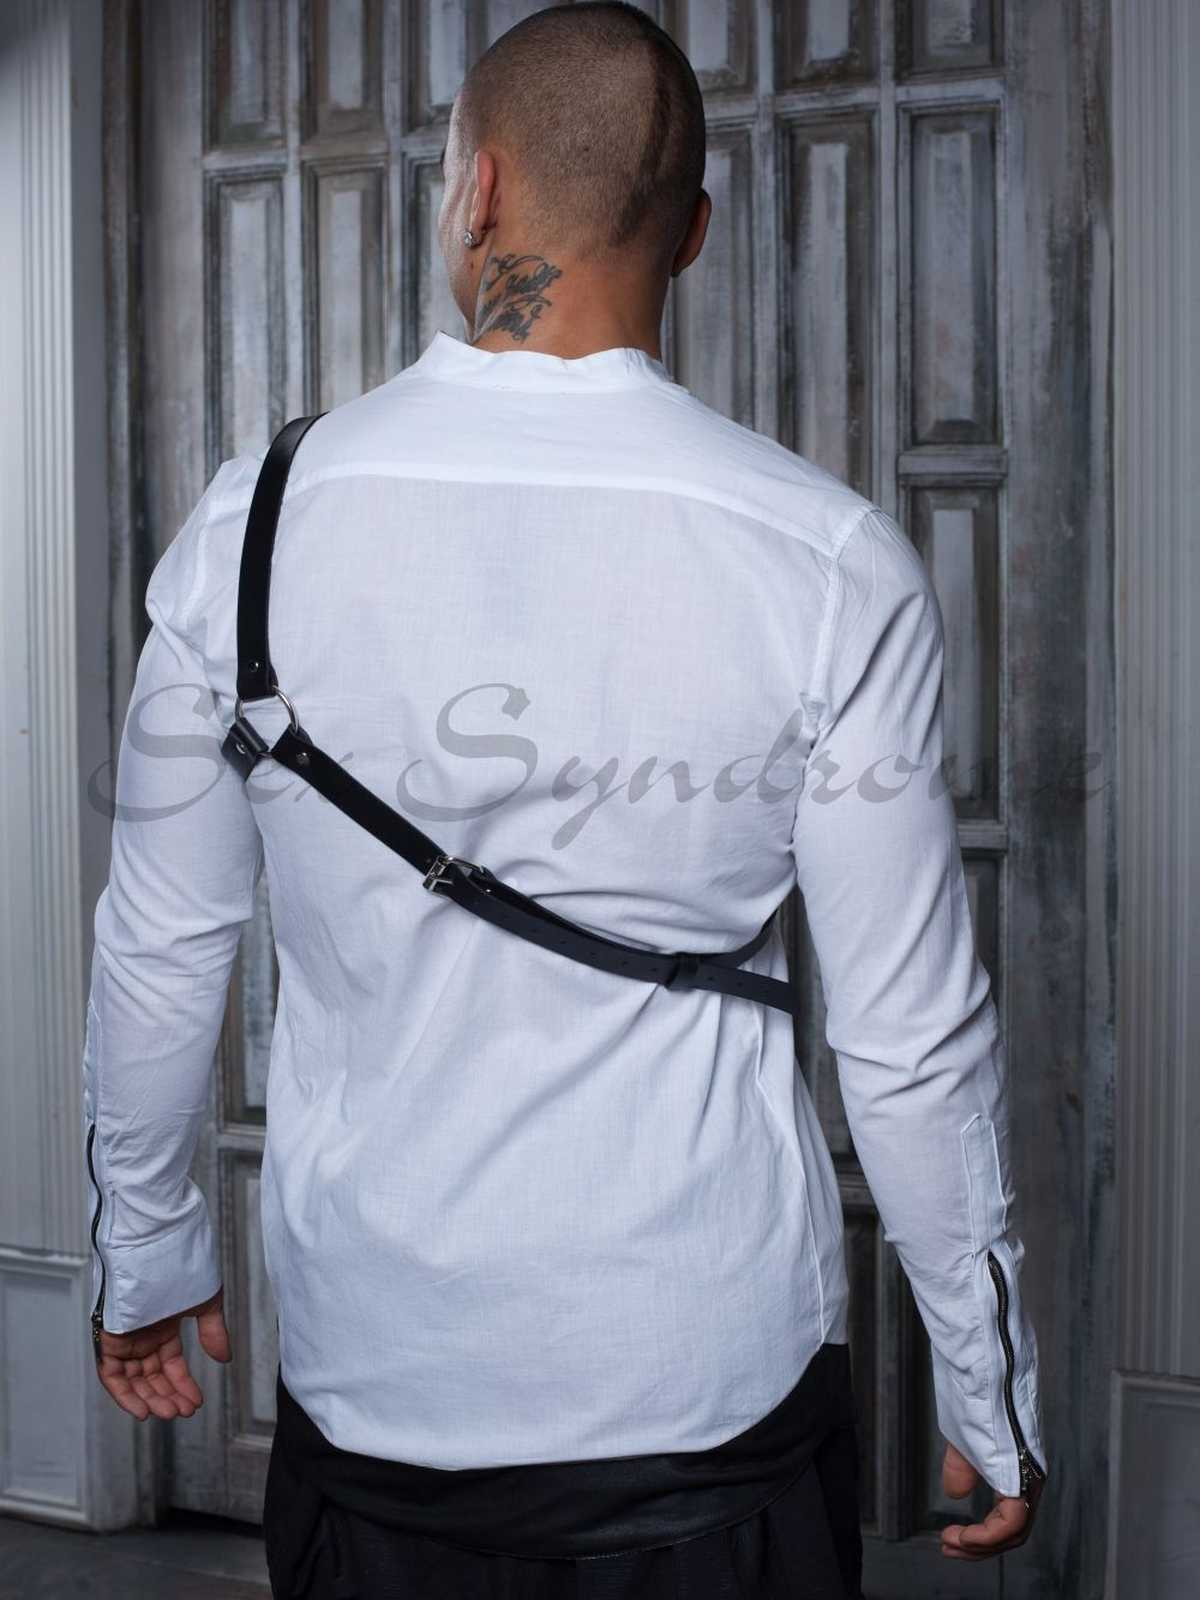 Leder harness Handsome